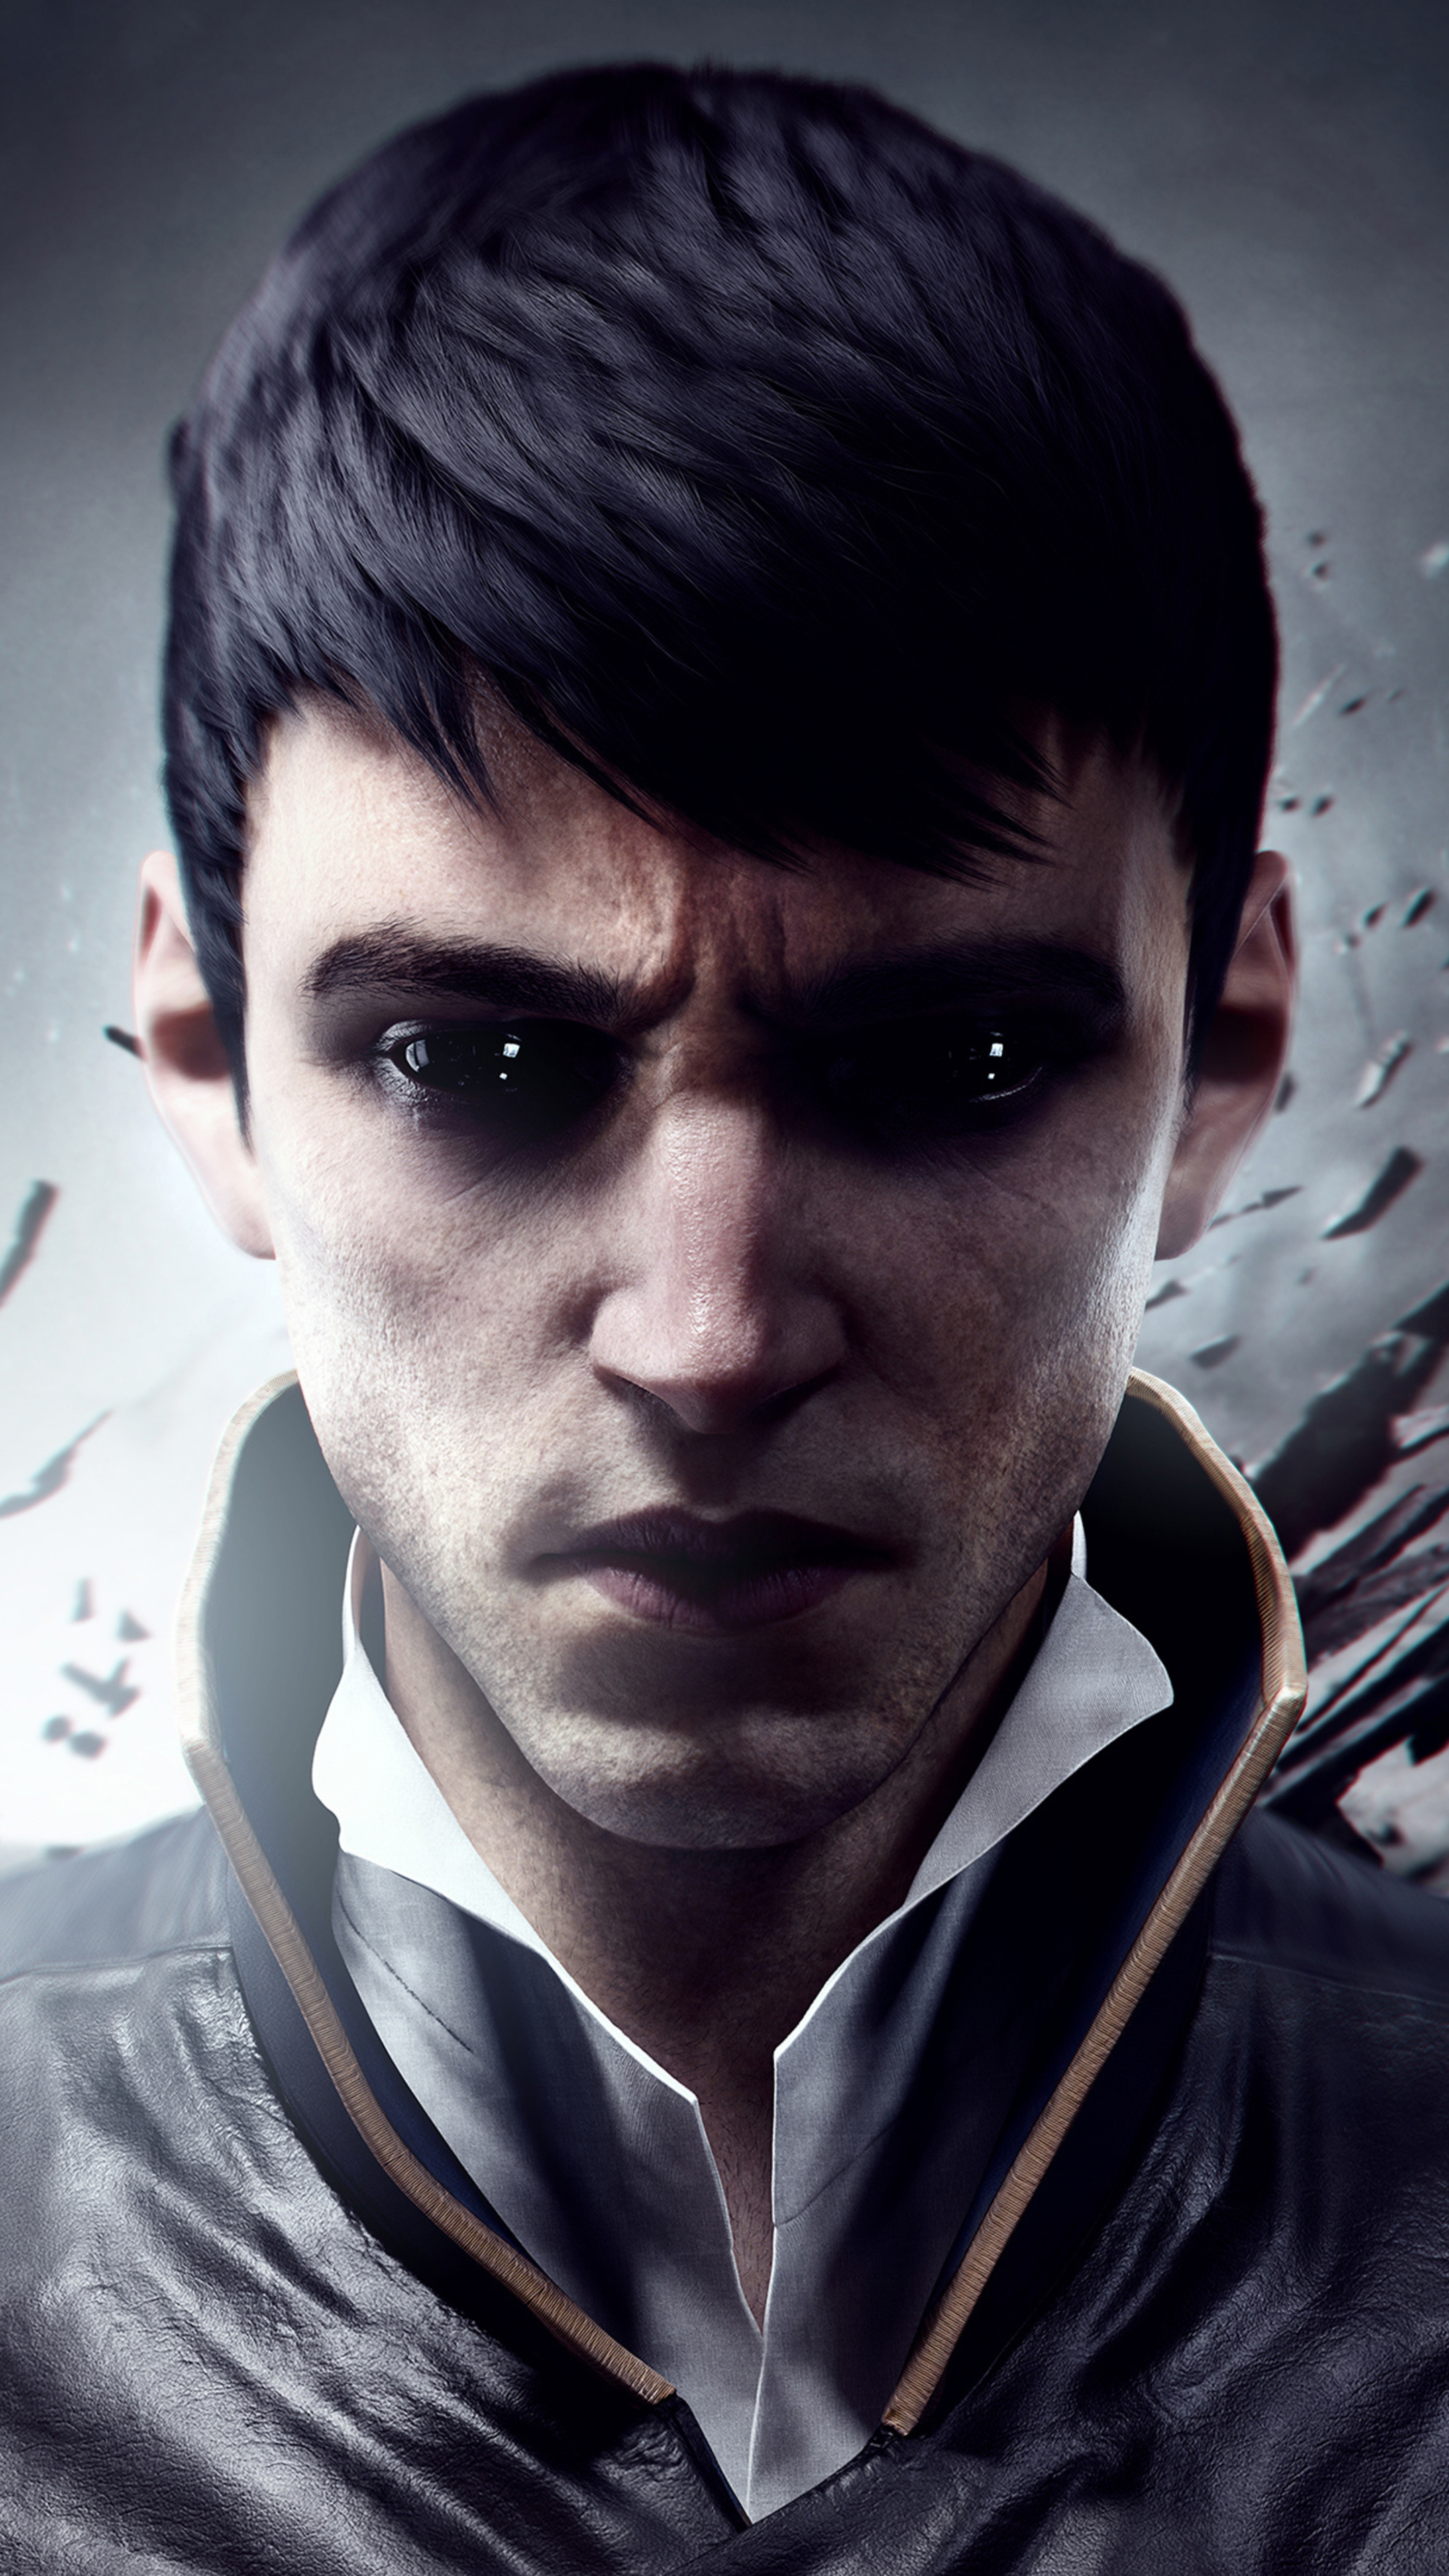 The Outsider Dishonored 2 4k Kn